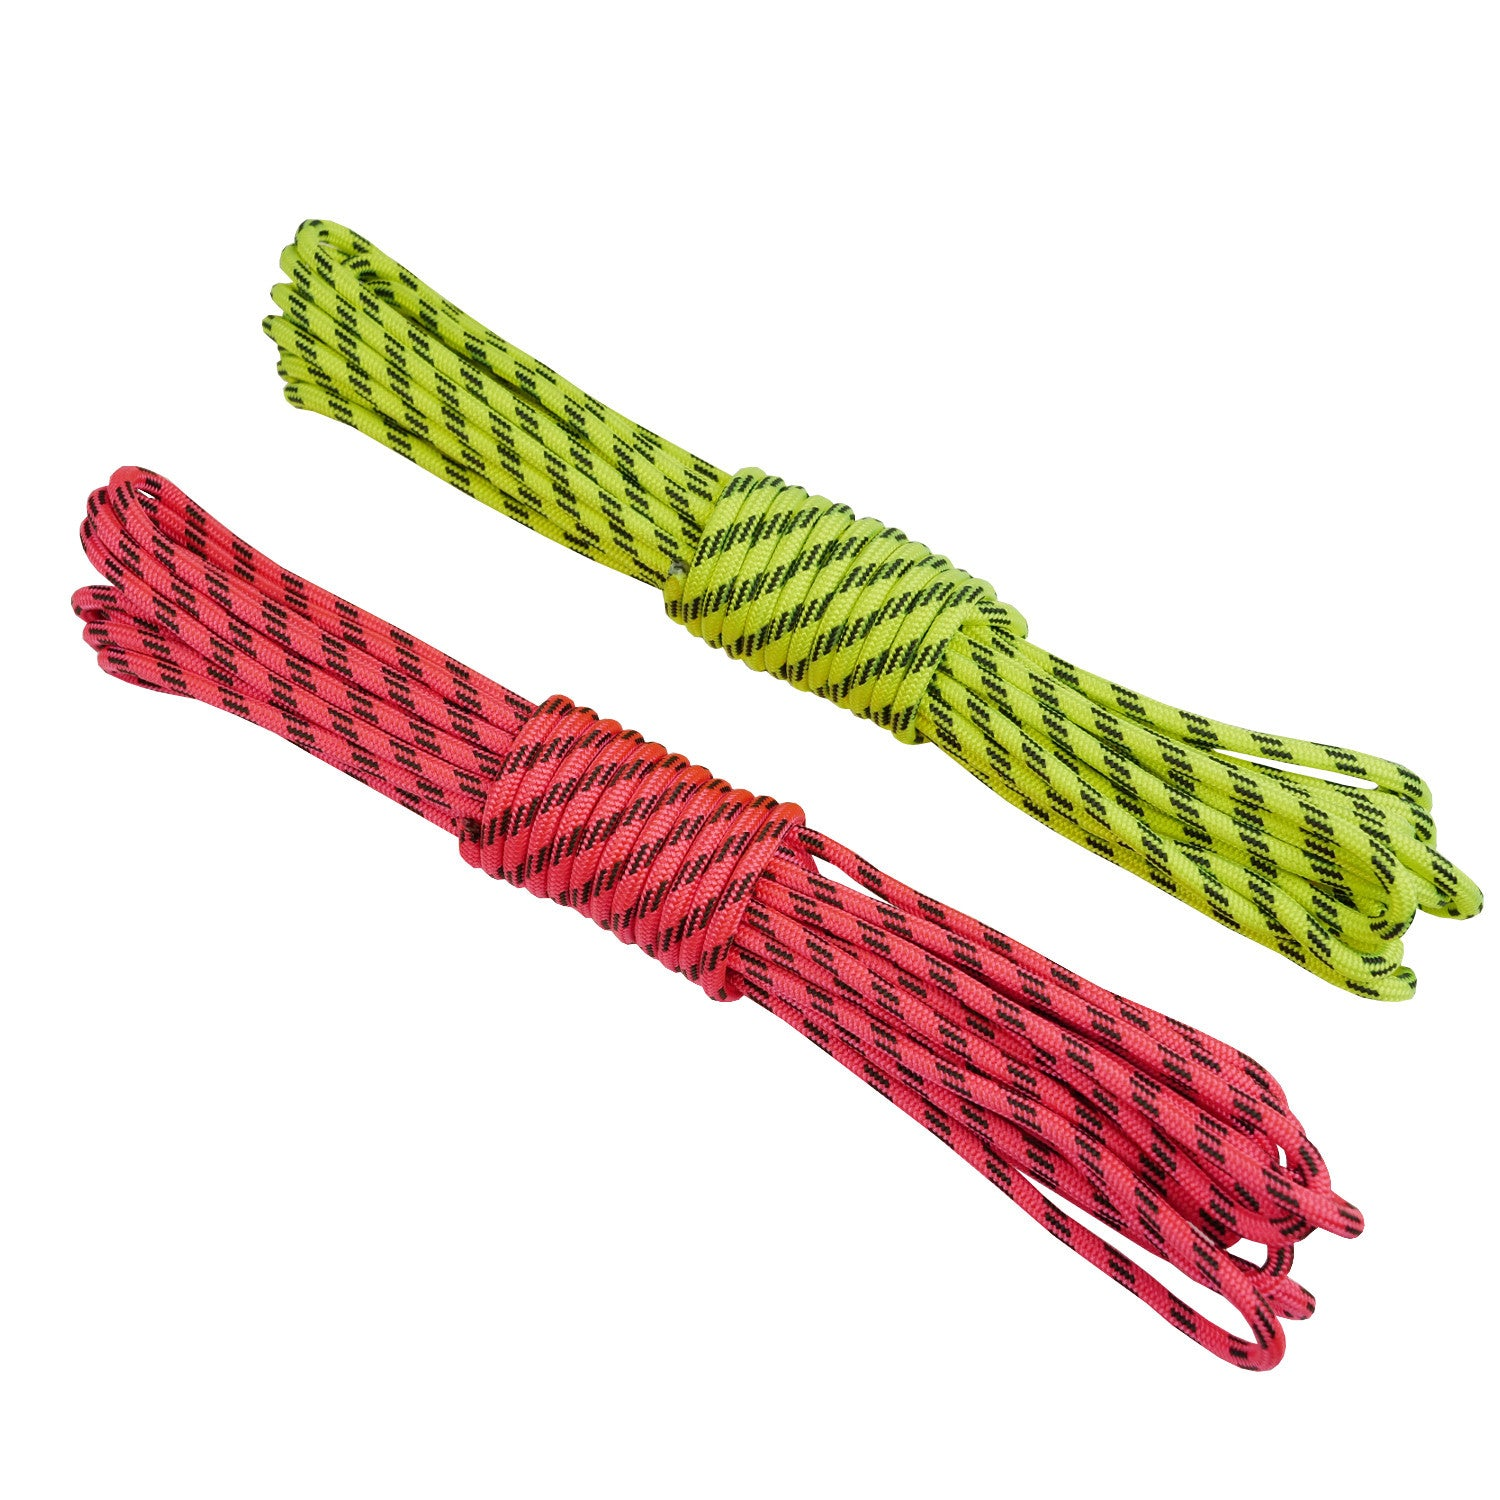 Rock + Run Accessory cord 5mm pink and yellow